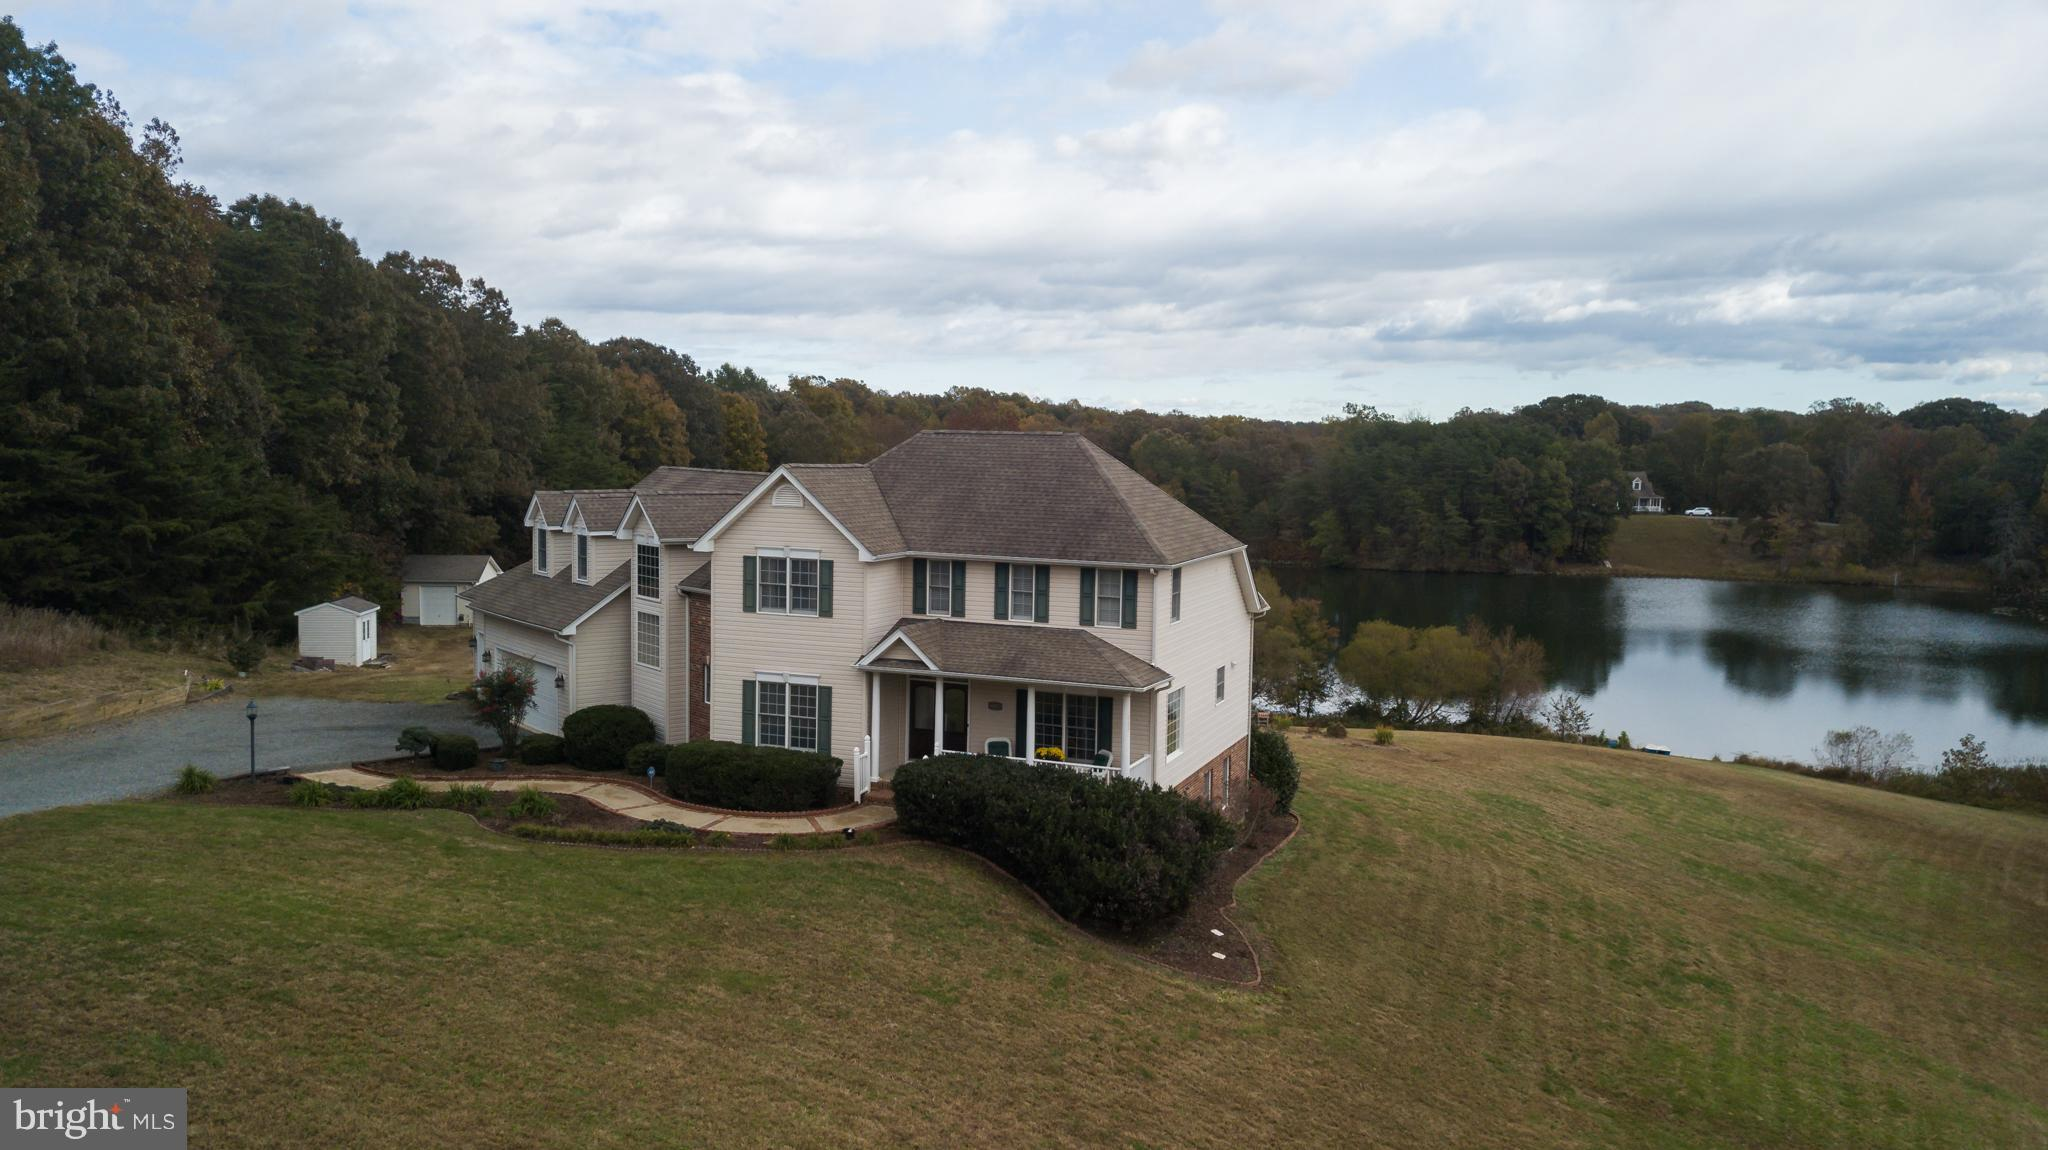 3435 WHITE HALL ROAD, KING GEORGE, VA 22485